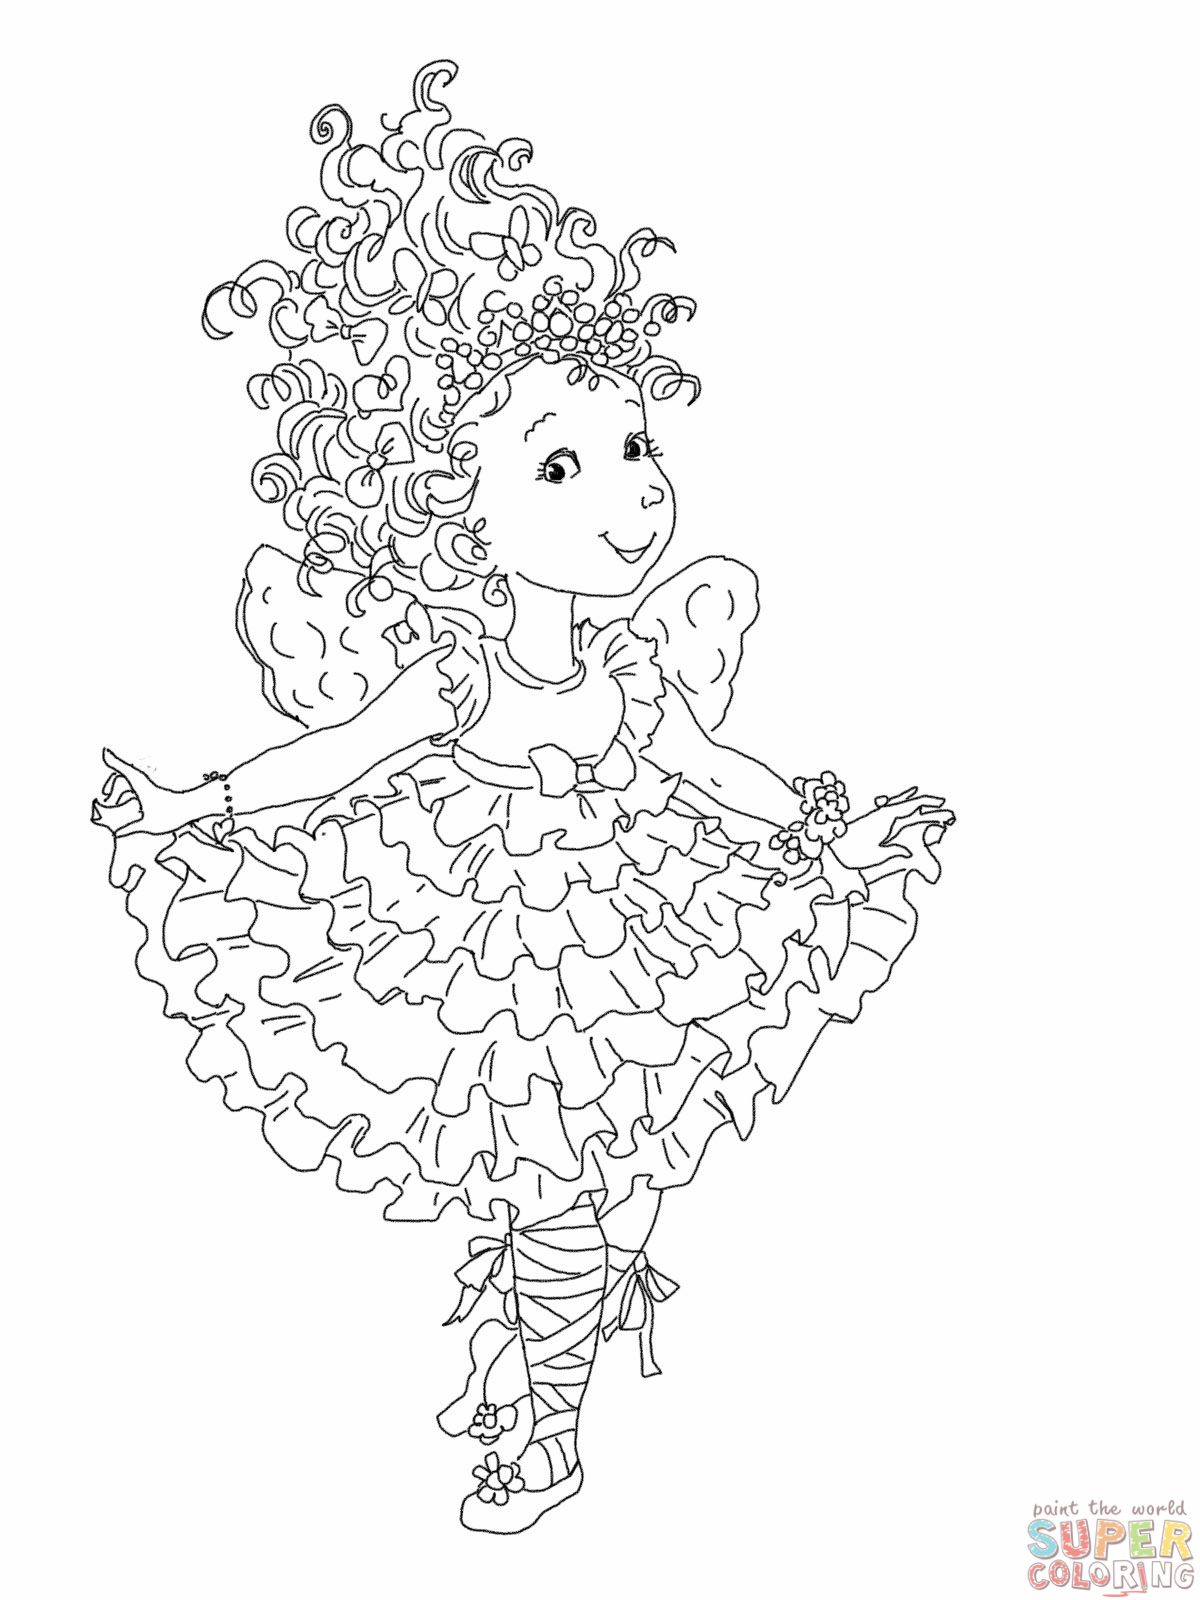 nancy carlson book coloring pages - photo#31